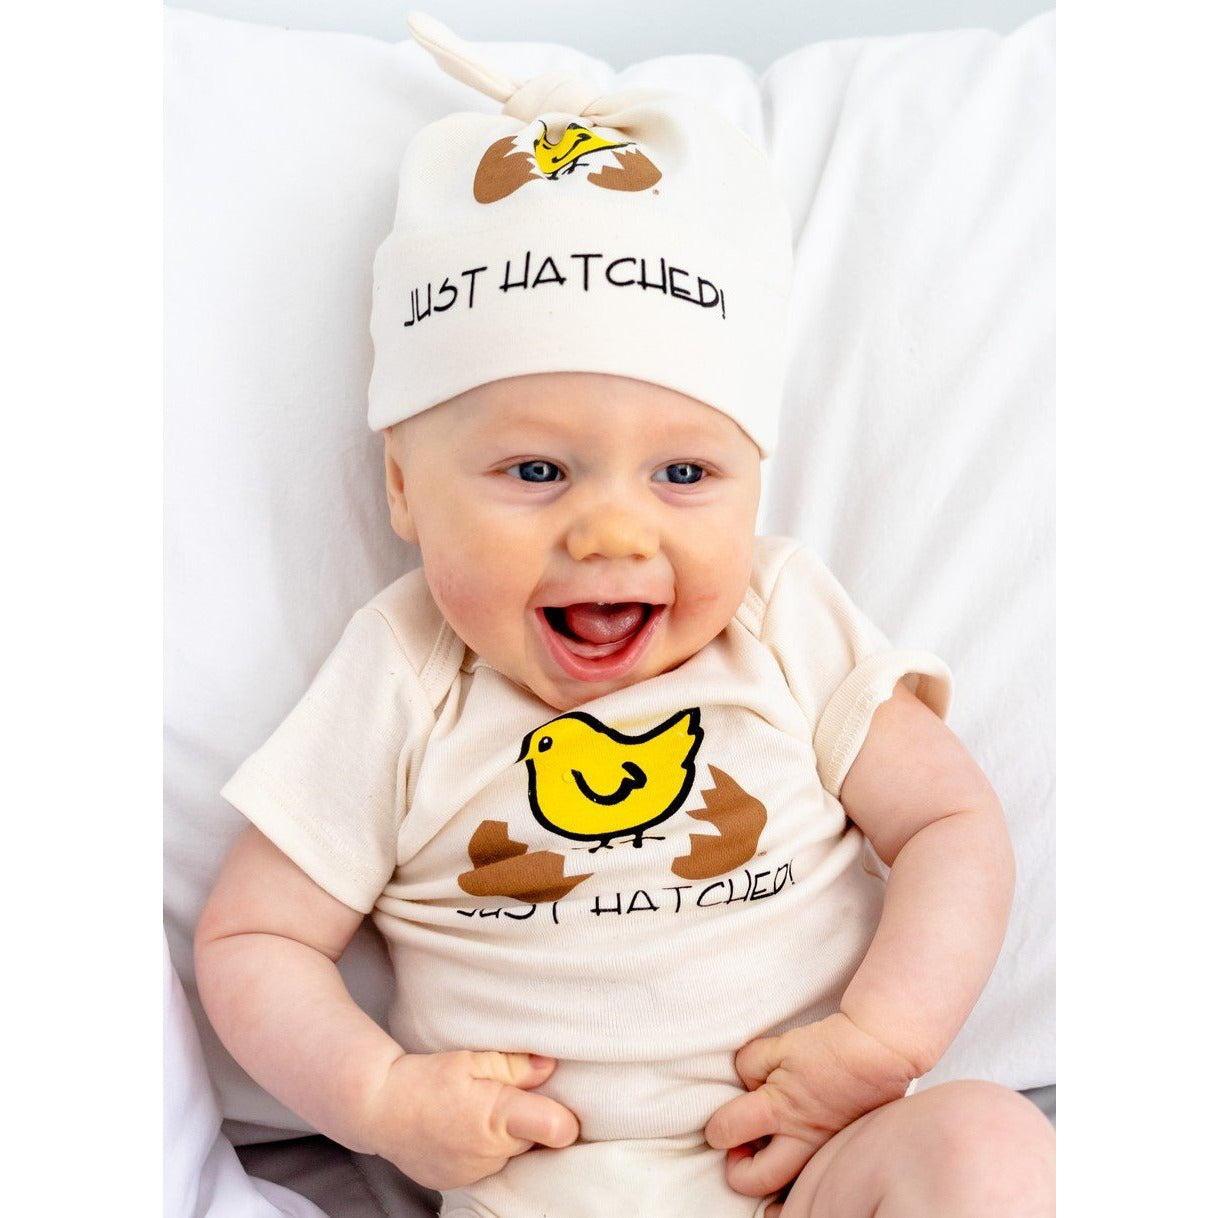 Organic cotton baby gift set - Hatched - Simply Chickie